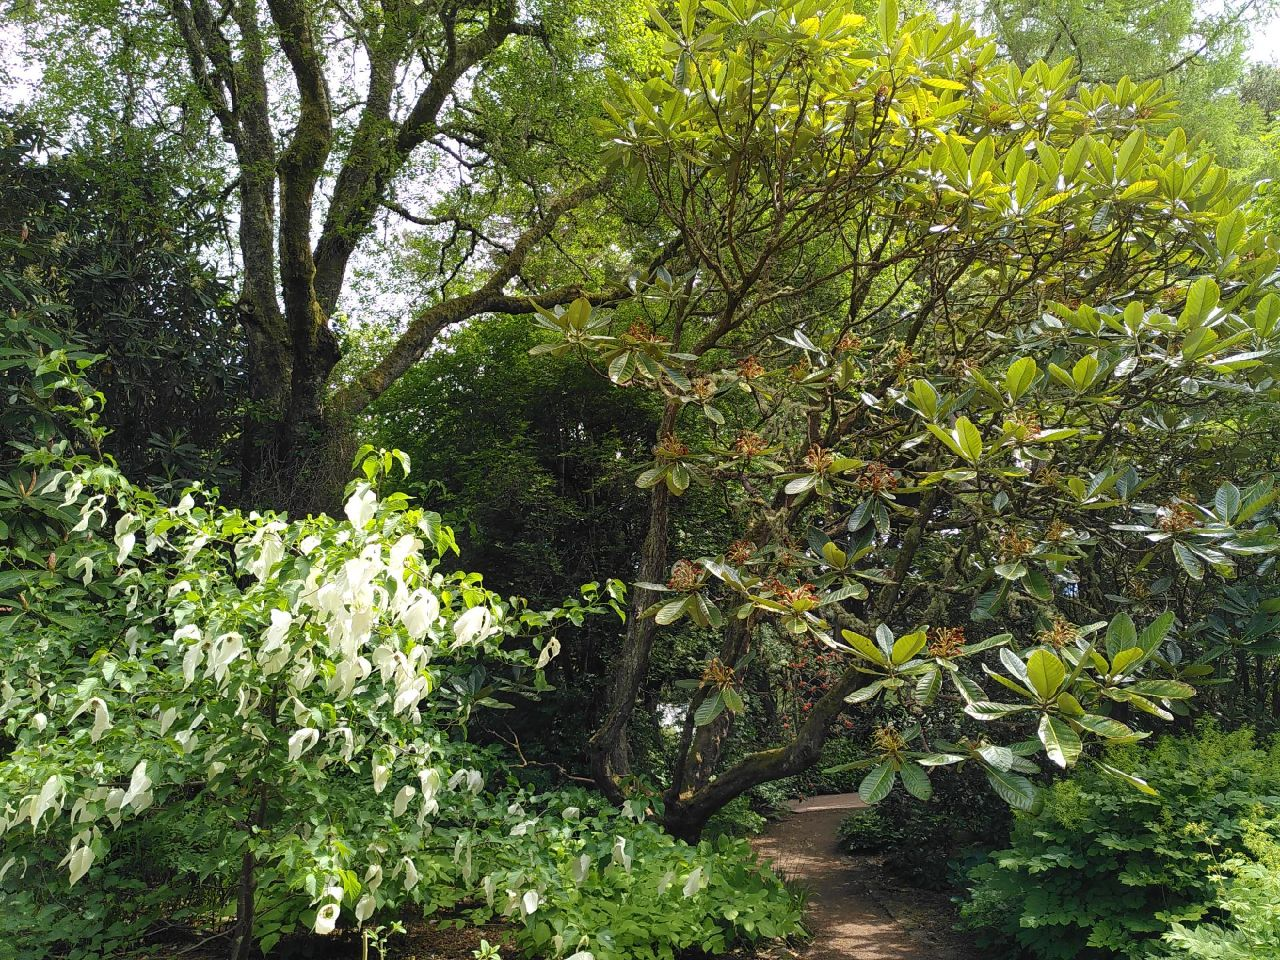 A rhododendron leans across the fine-gravel path behind a bush with ghostly flowers that hang rice-paper like in the breeze. The background has a tall tree.